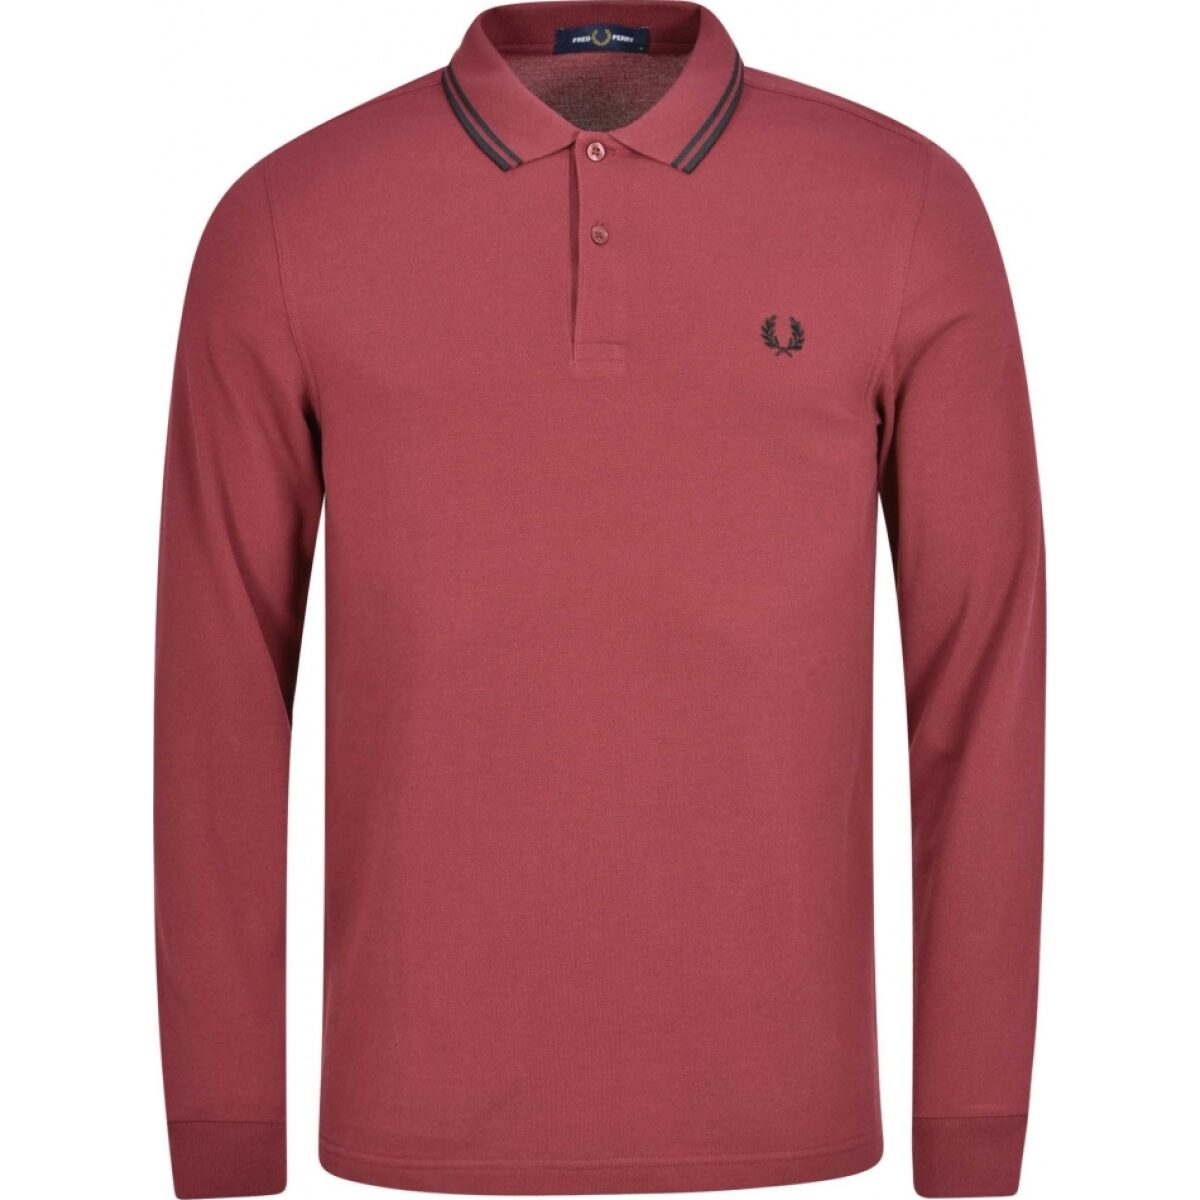 560968 fred perry andriko polo m3636 d31